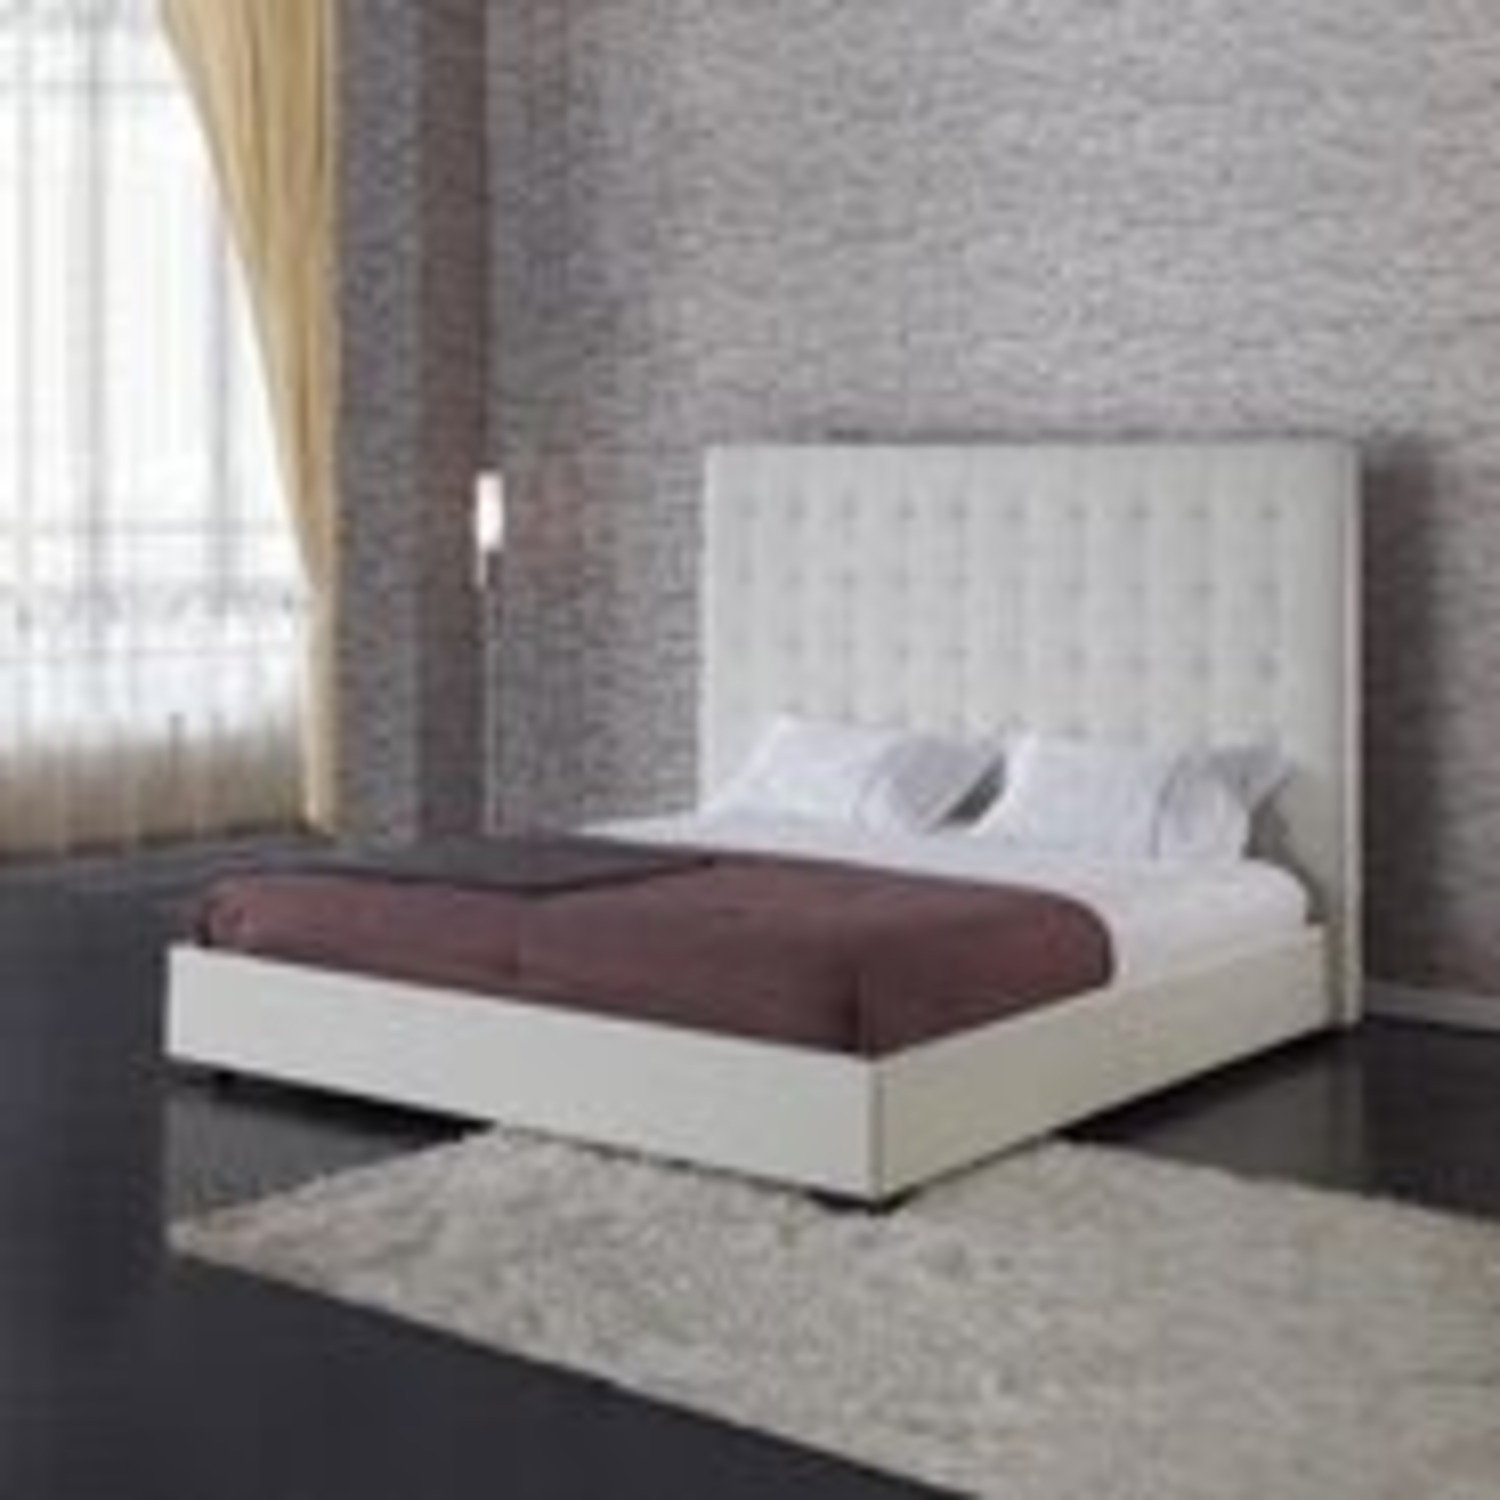 DG White Leather King Bed - image-3